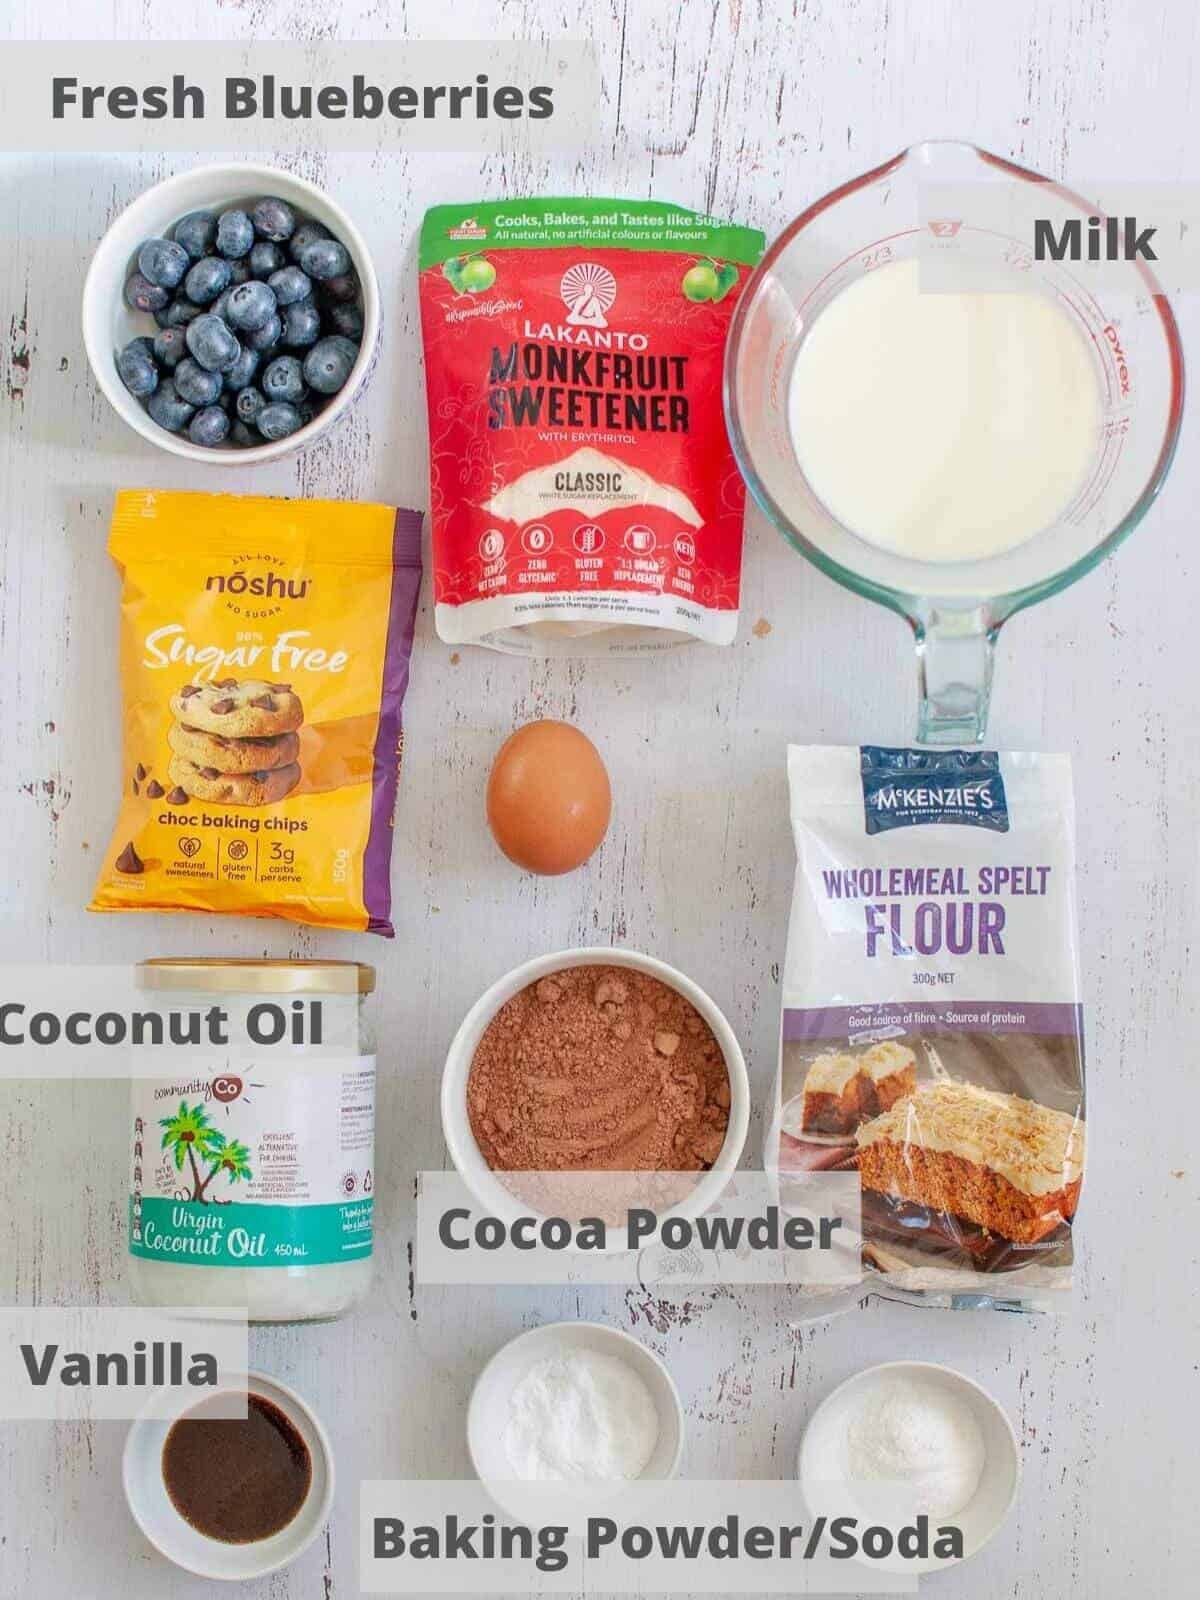 Chocolate blueberry muffin ingredients